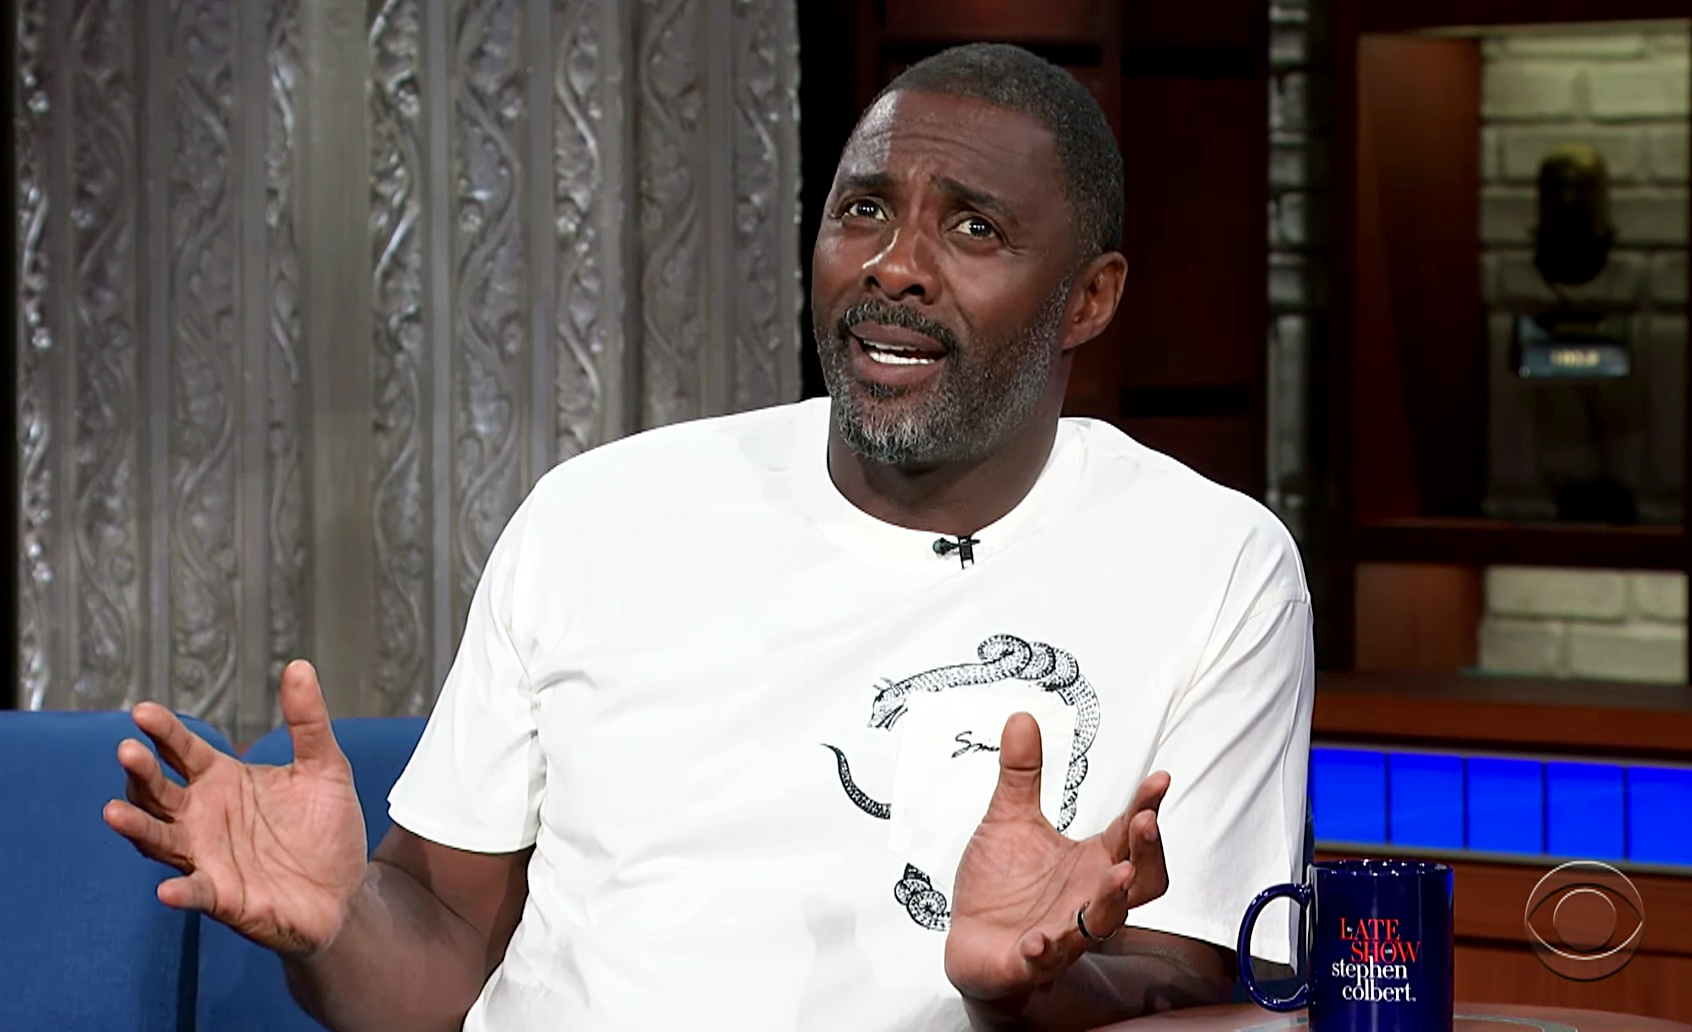 Cats Idris Elba Doesn't Know What the Musicals About - Idris Elba on 'The Late Show with Stephen Colbert'.